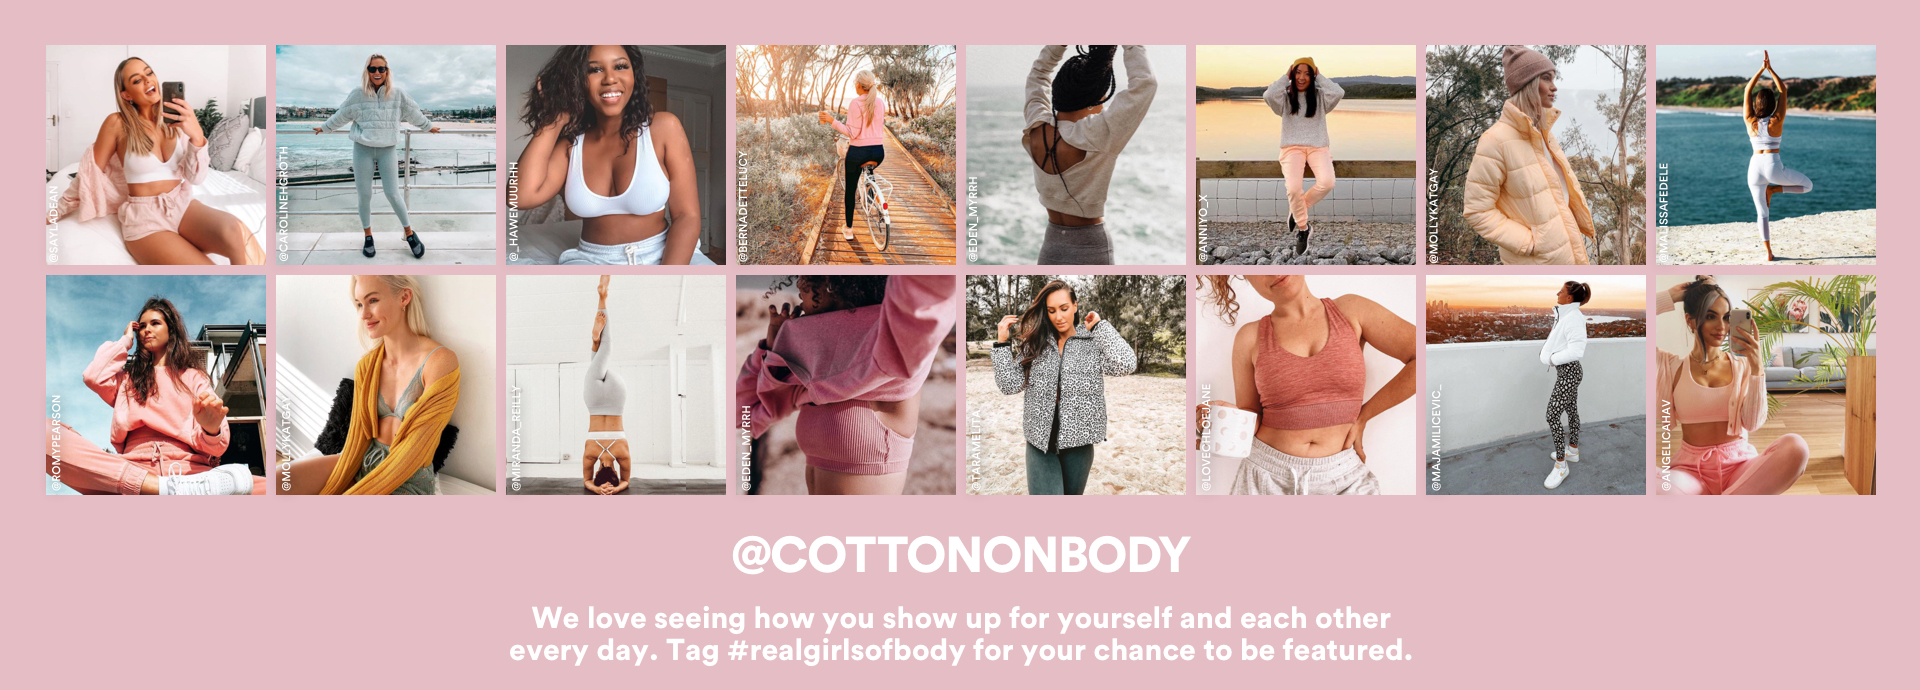 Do your feed a favor. Shop the latest looks and tag #CottonOnBody for your chance to be featured. Click to shop.